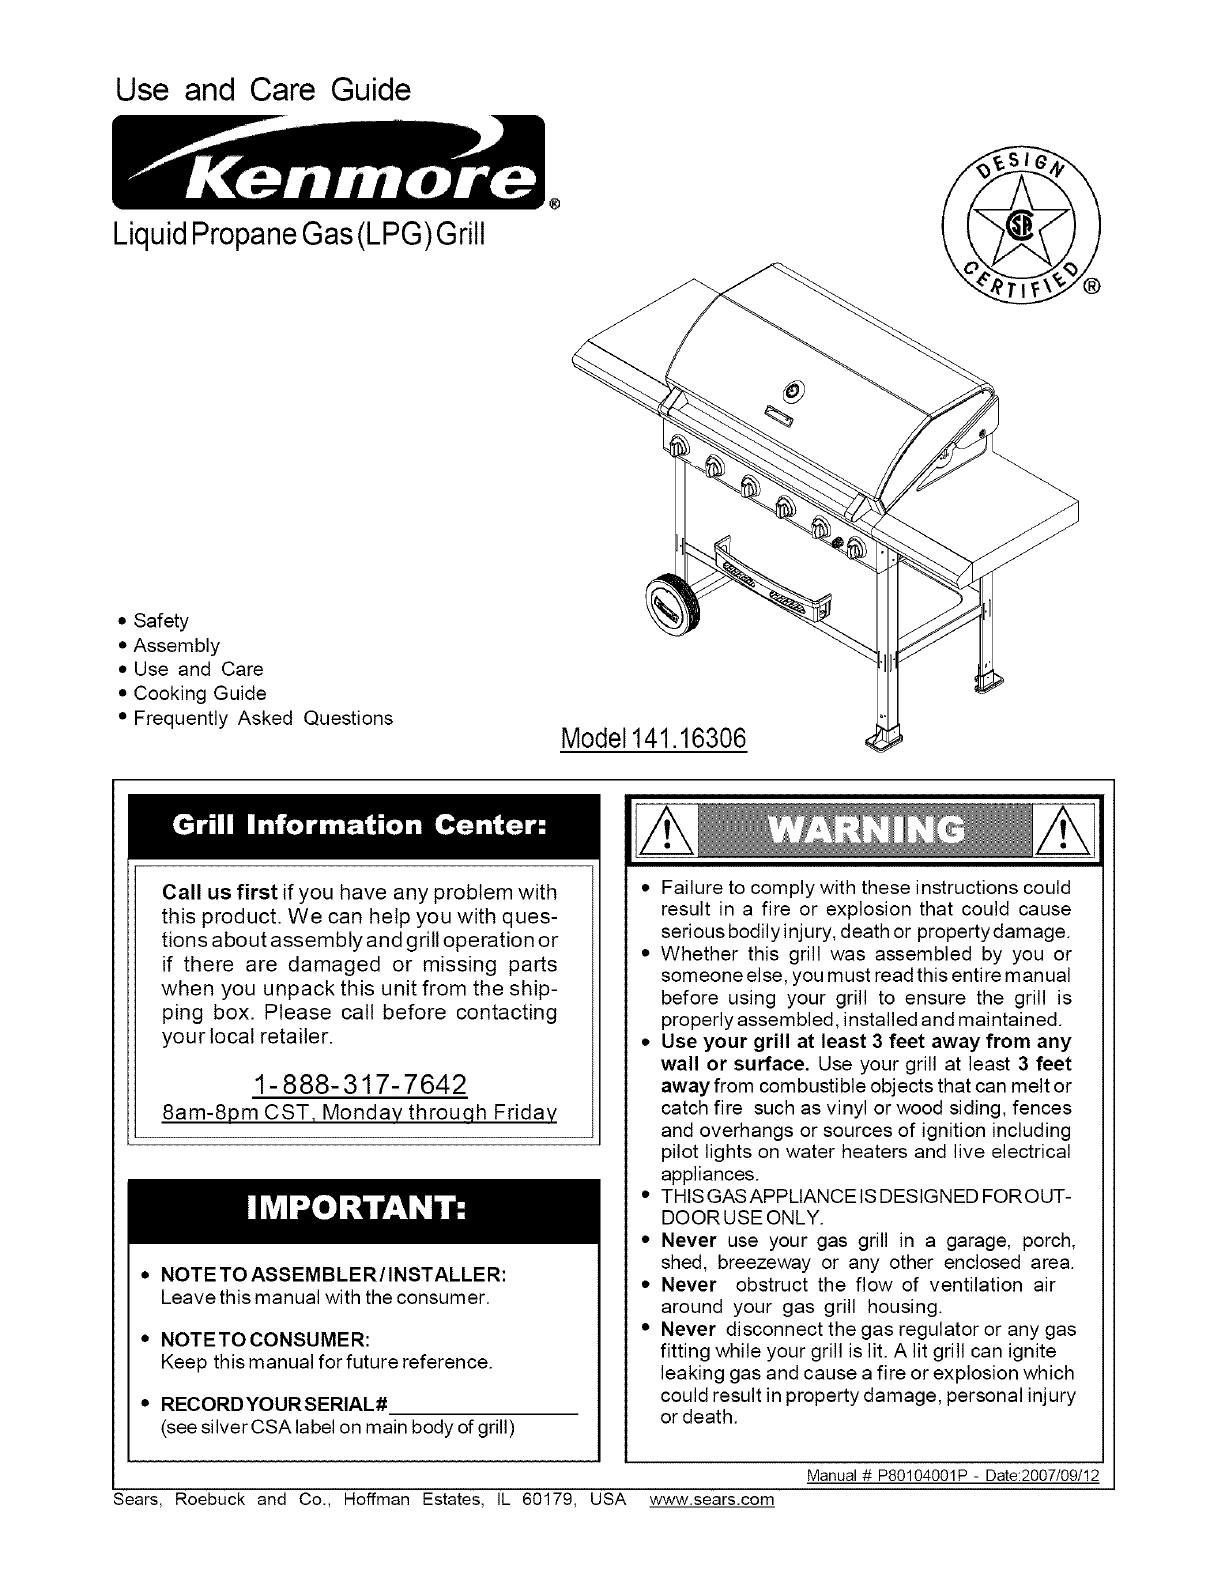 Kenmore 14116306 User Manual LPG GRILL Manuals And Guides